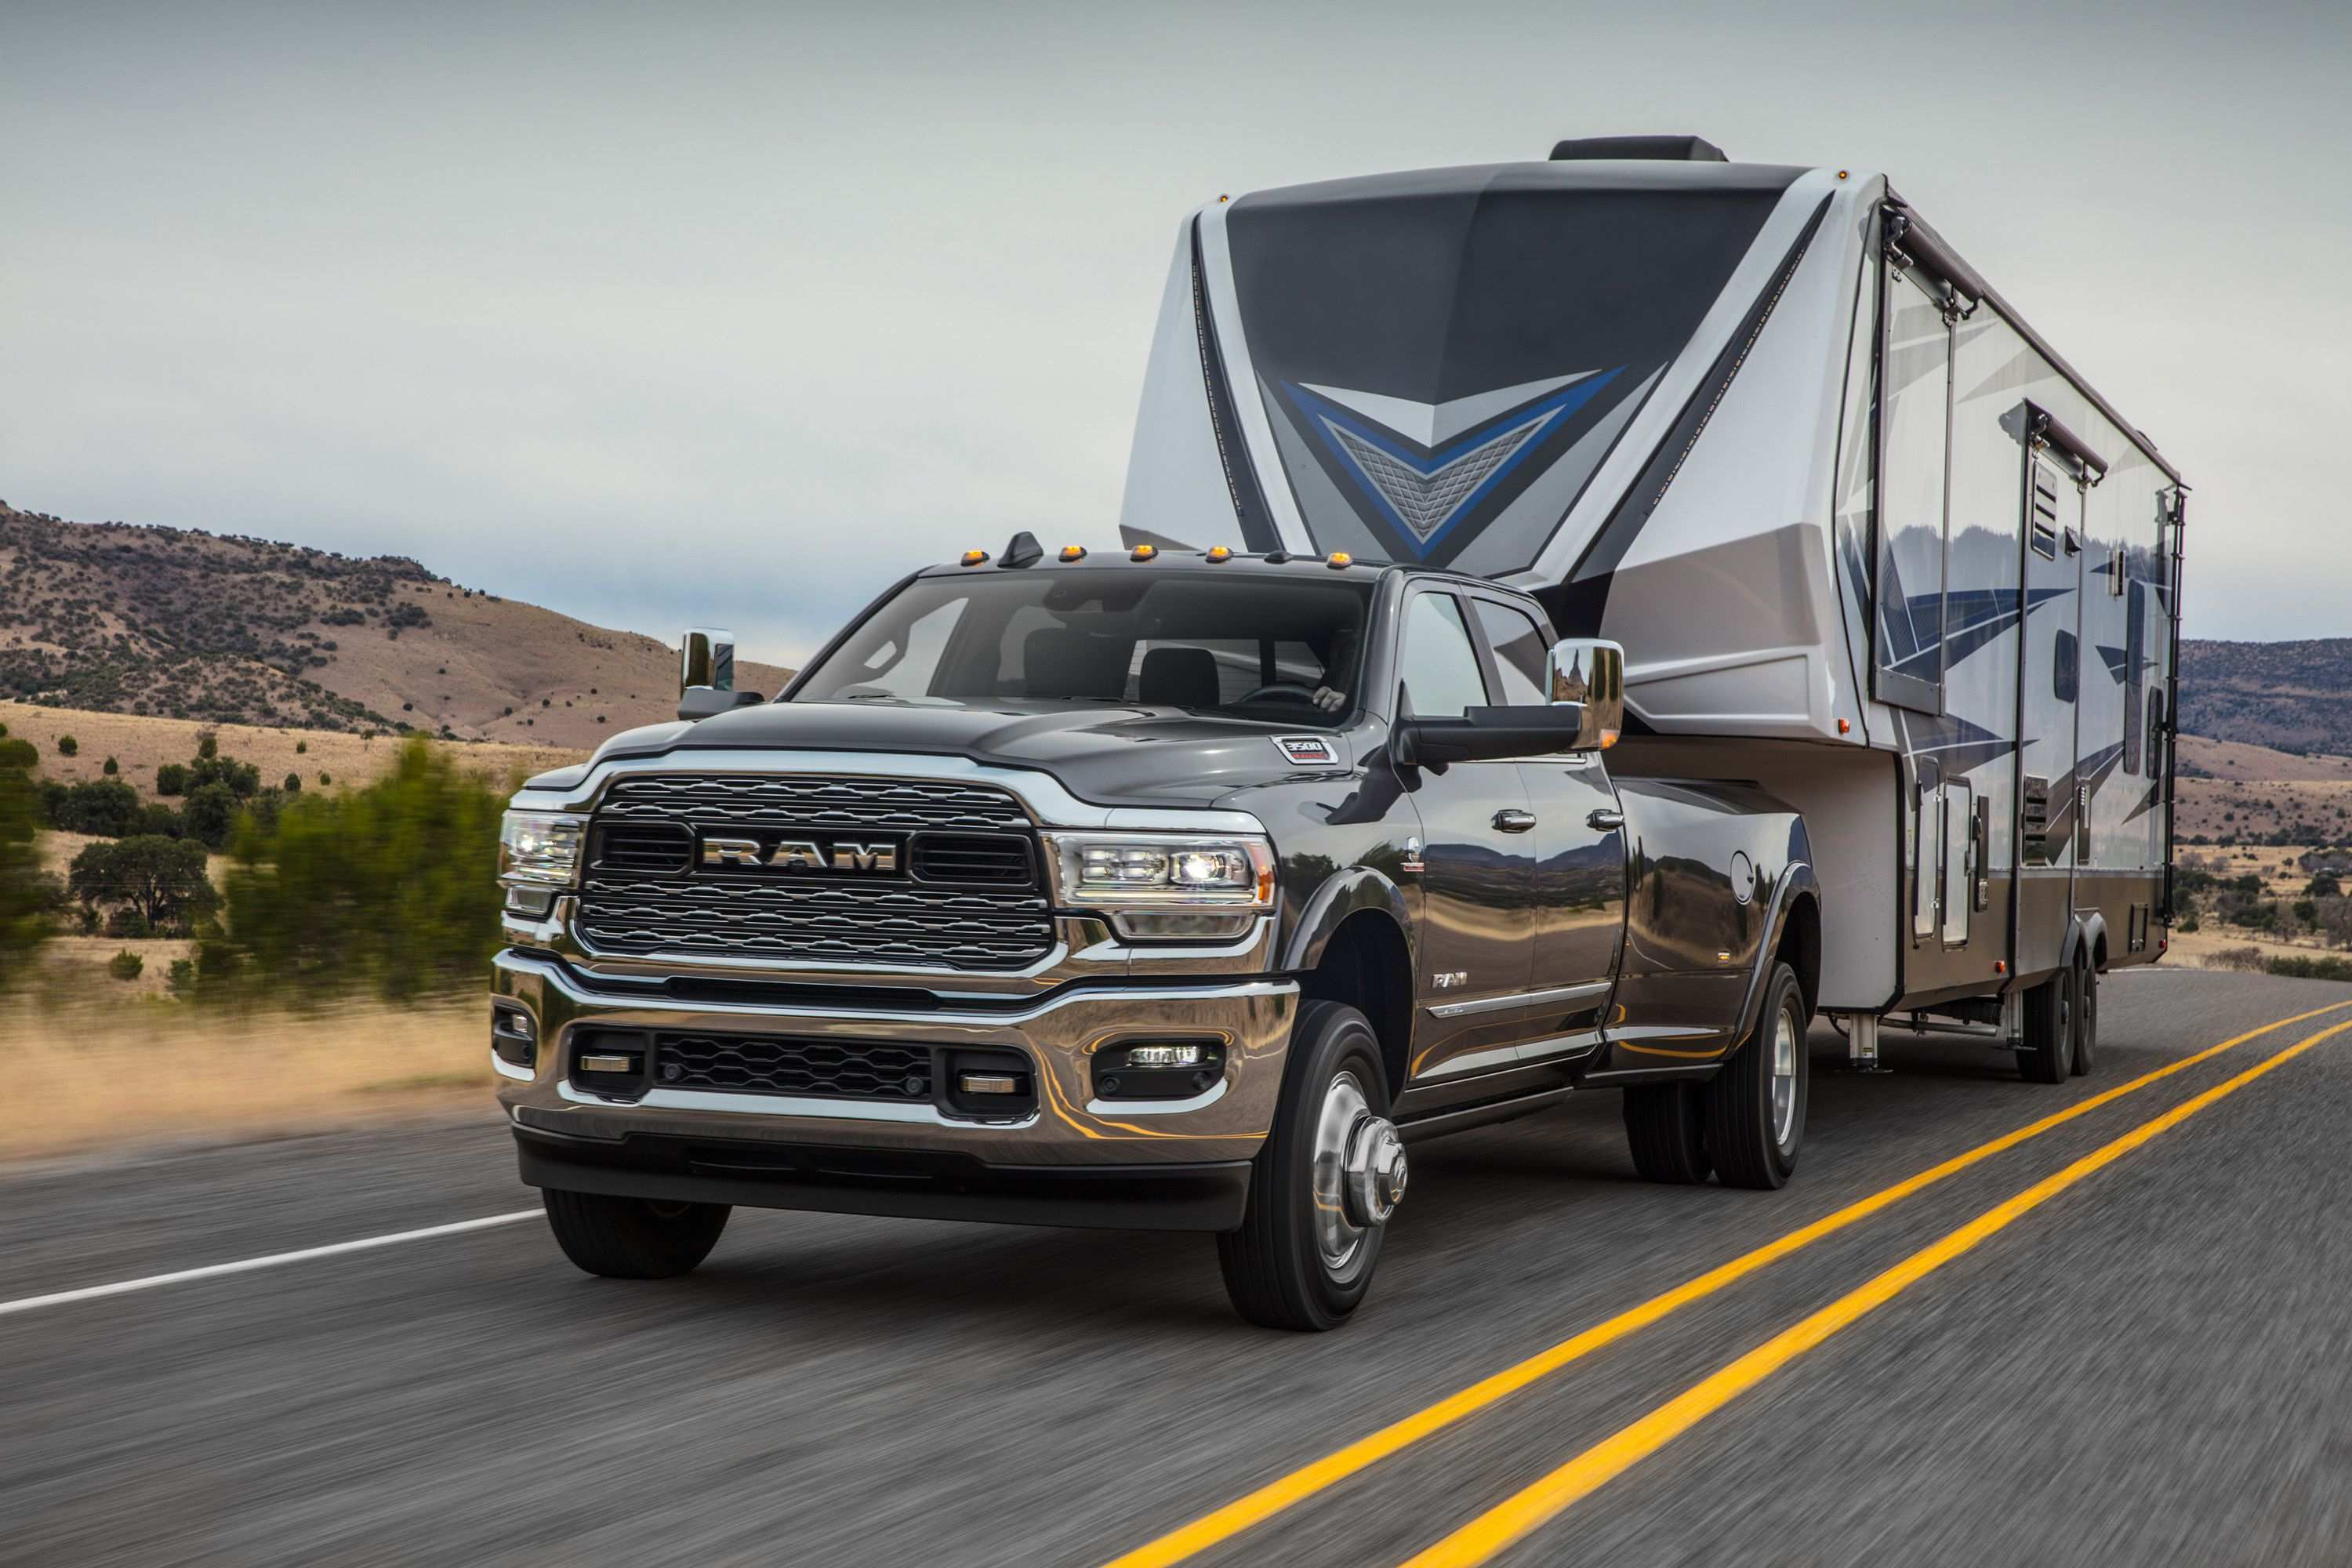 70 New 2020 Dodge Ram 2500 Cummins Review And Release Date